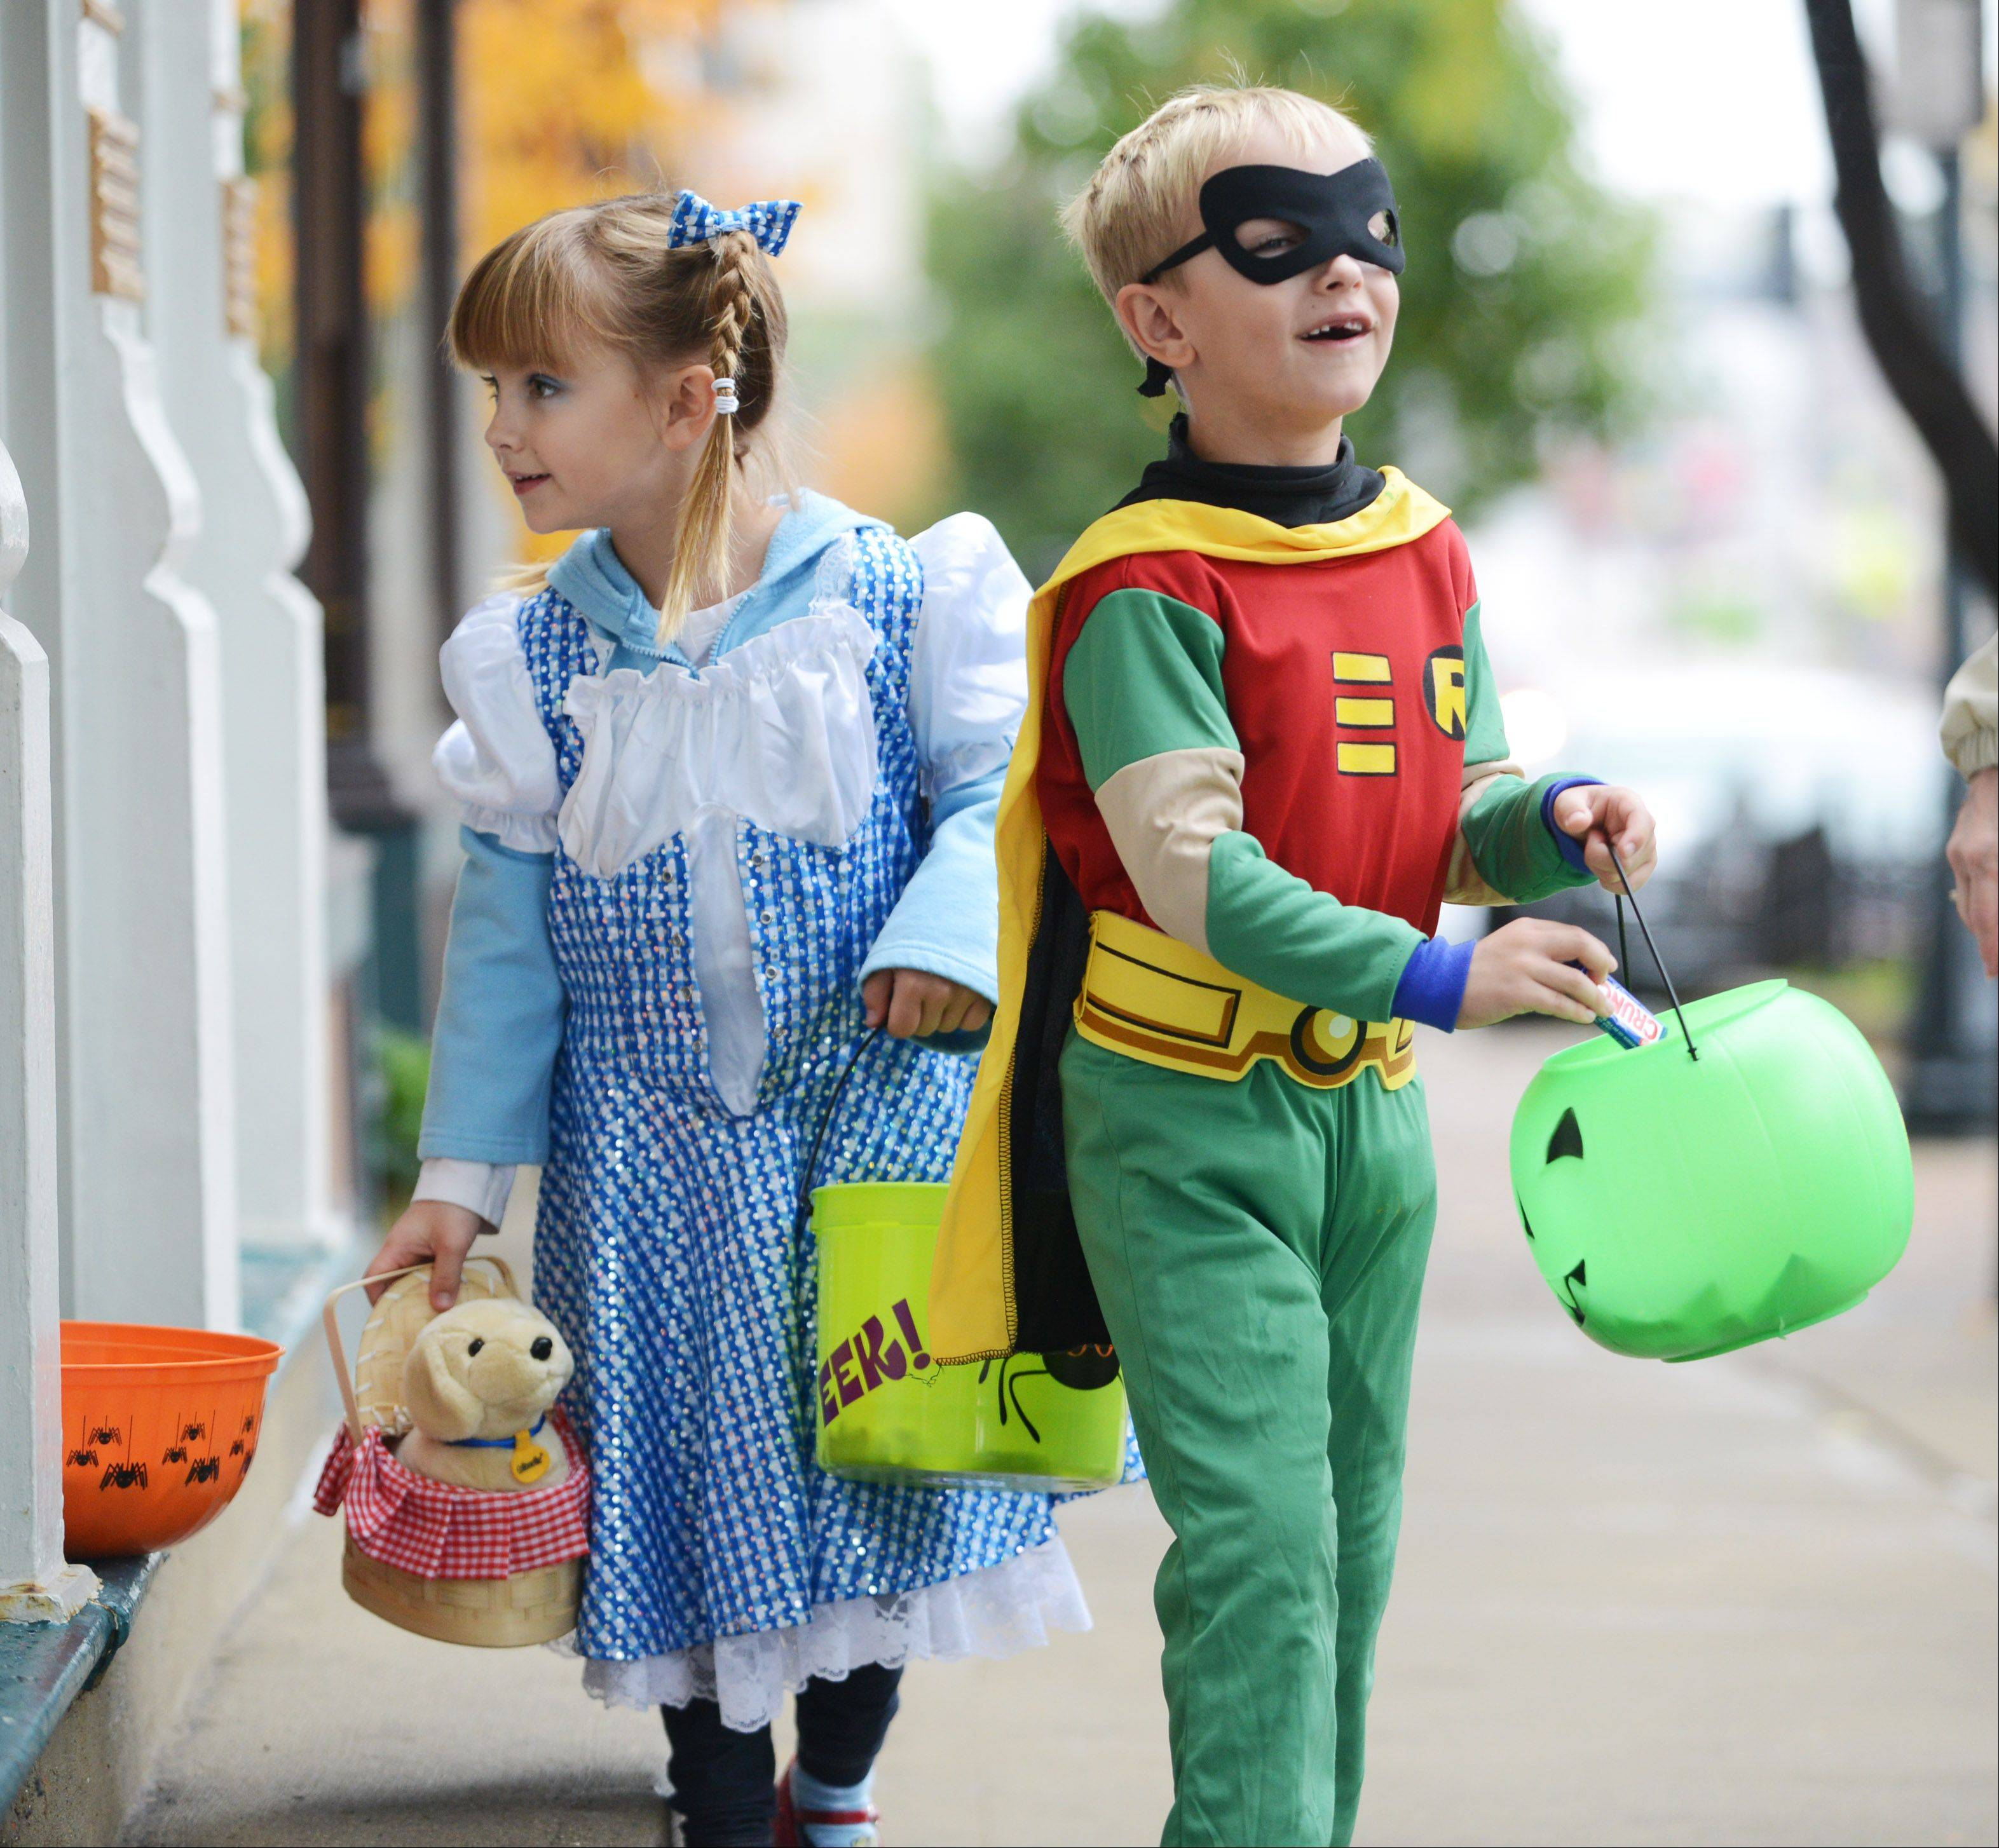 Seven-year-old Bailey Truitt, left, dressed as Wizard of Oz character Dorothy while her twin brother, Lucas, both of Grayslake, dressed as Robin during the MainStreet Libertyville Trick or Treat event Friday.